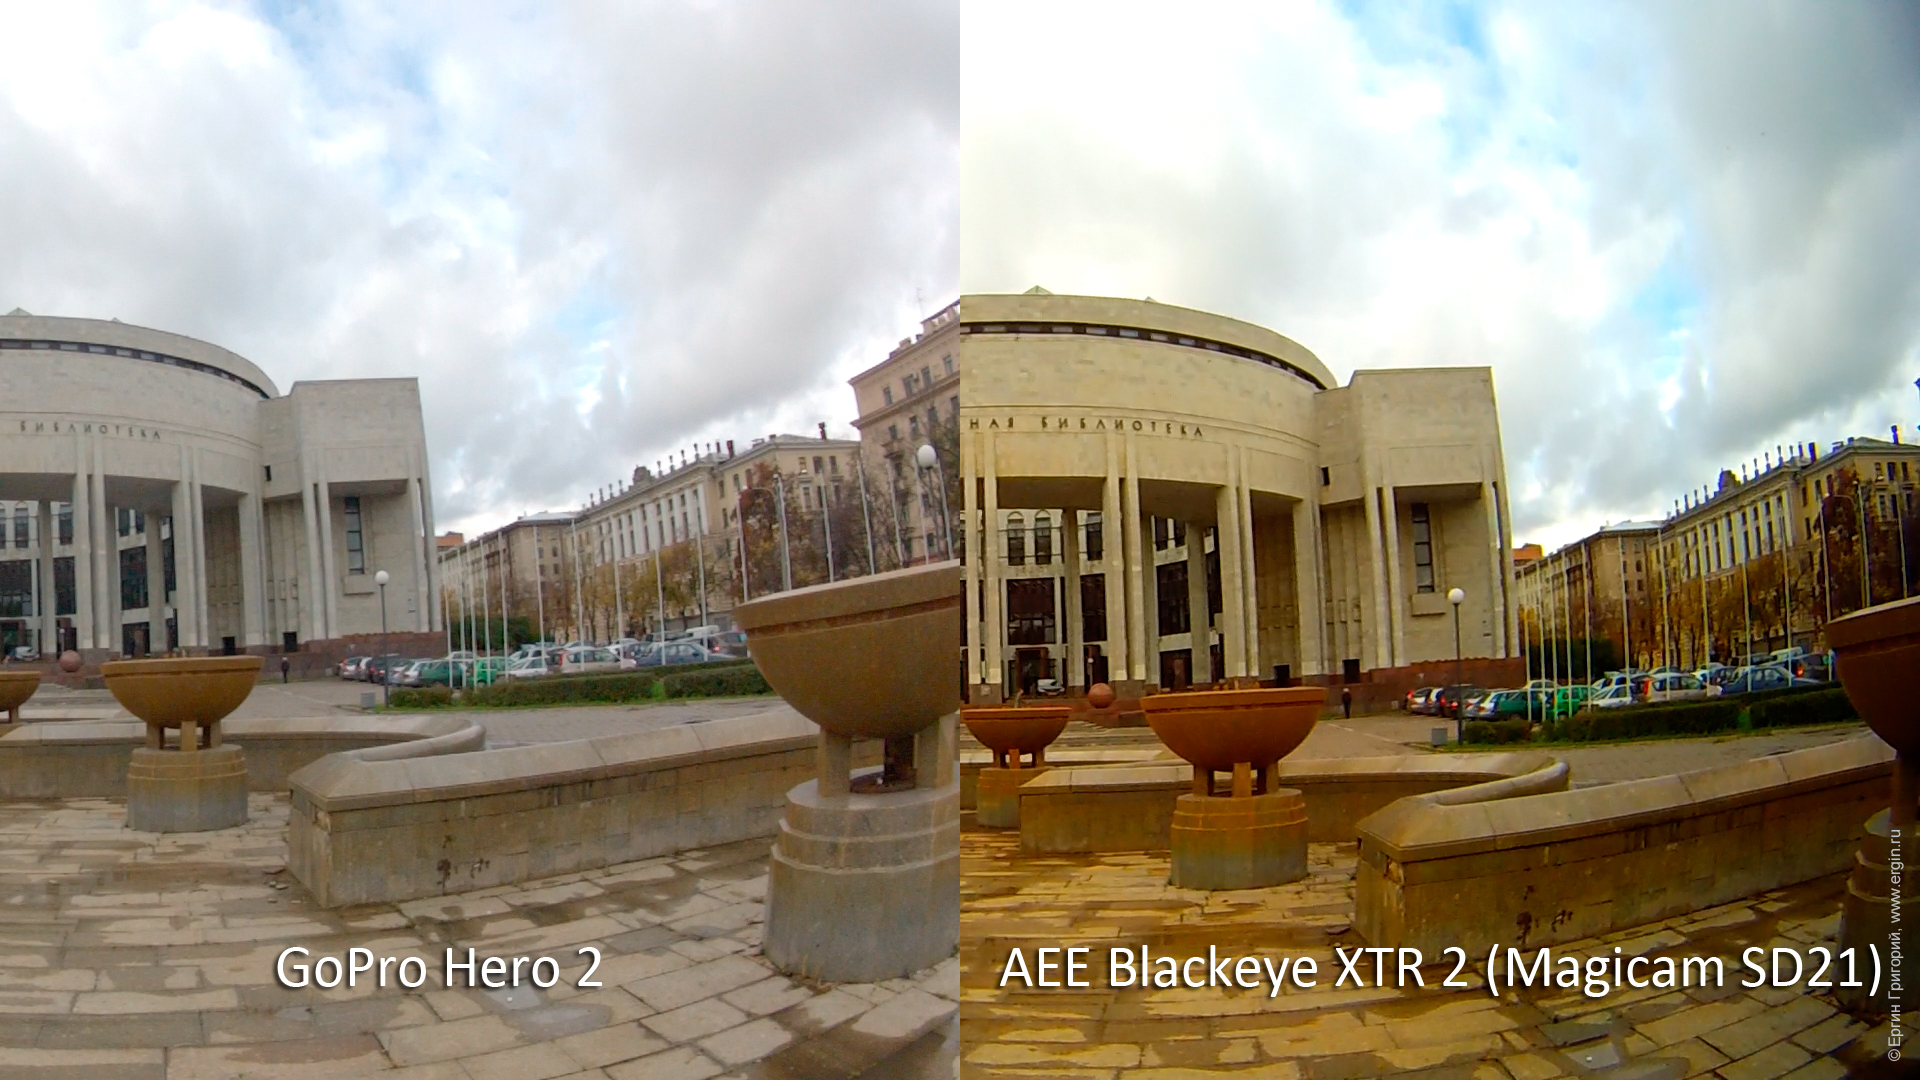 AEE Blackeye XTR 2 (AEE Magicam SD21) vs GoPro Hero 2: библиотека и небо